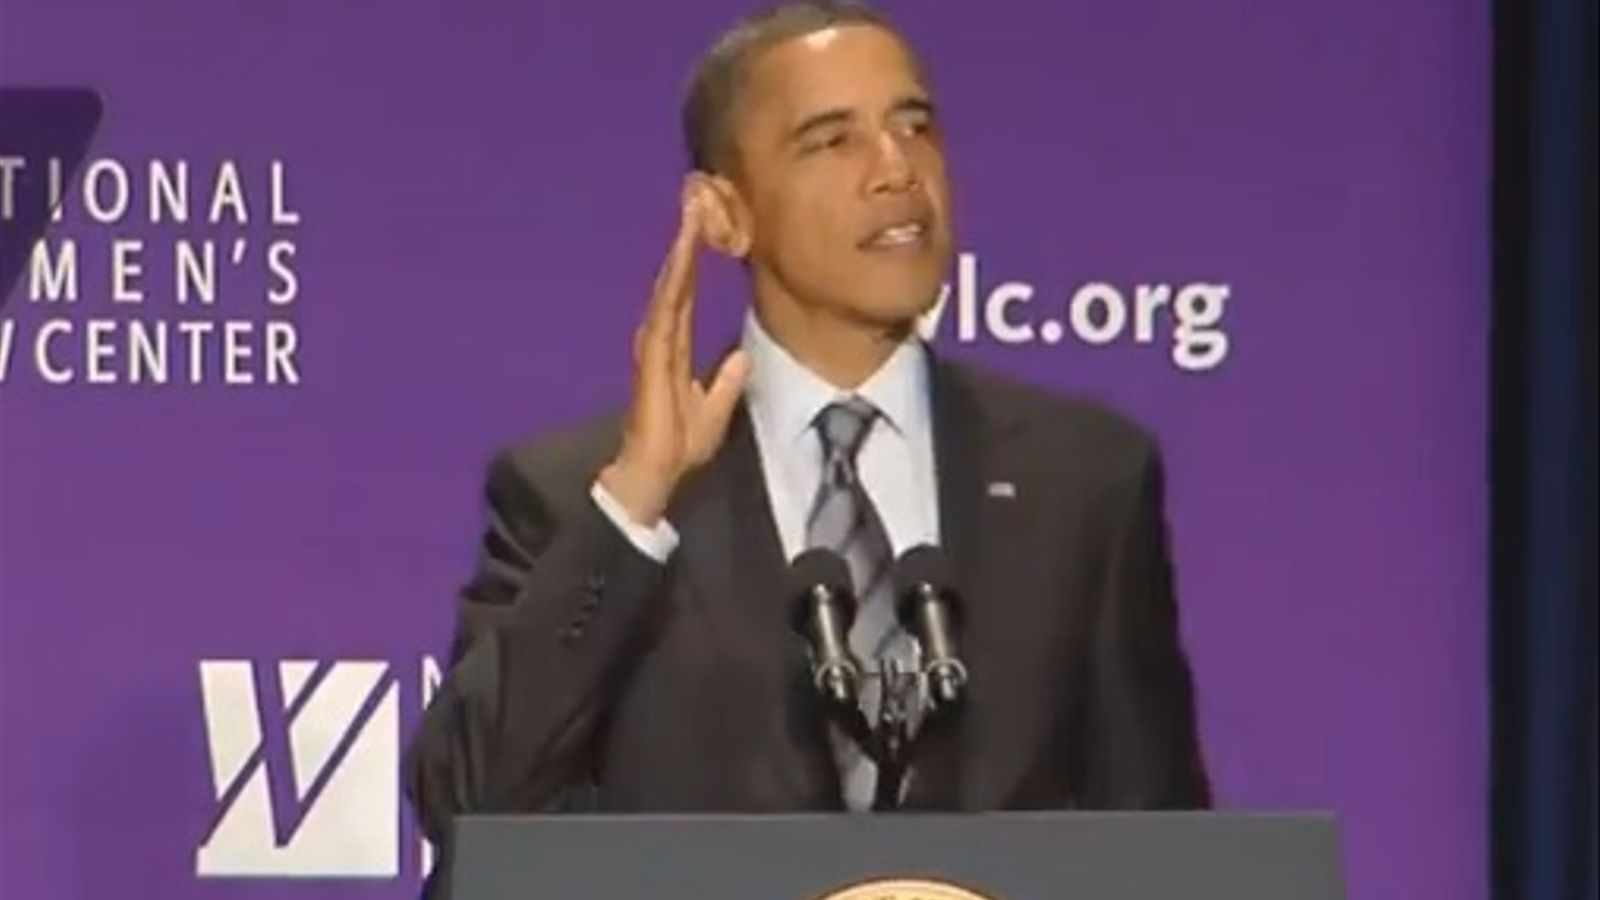 Obama canta 'Born this way' de Lady Gaga